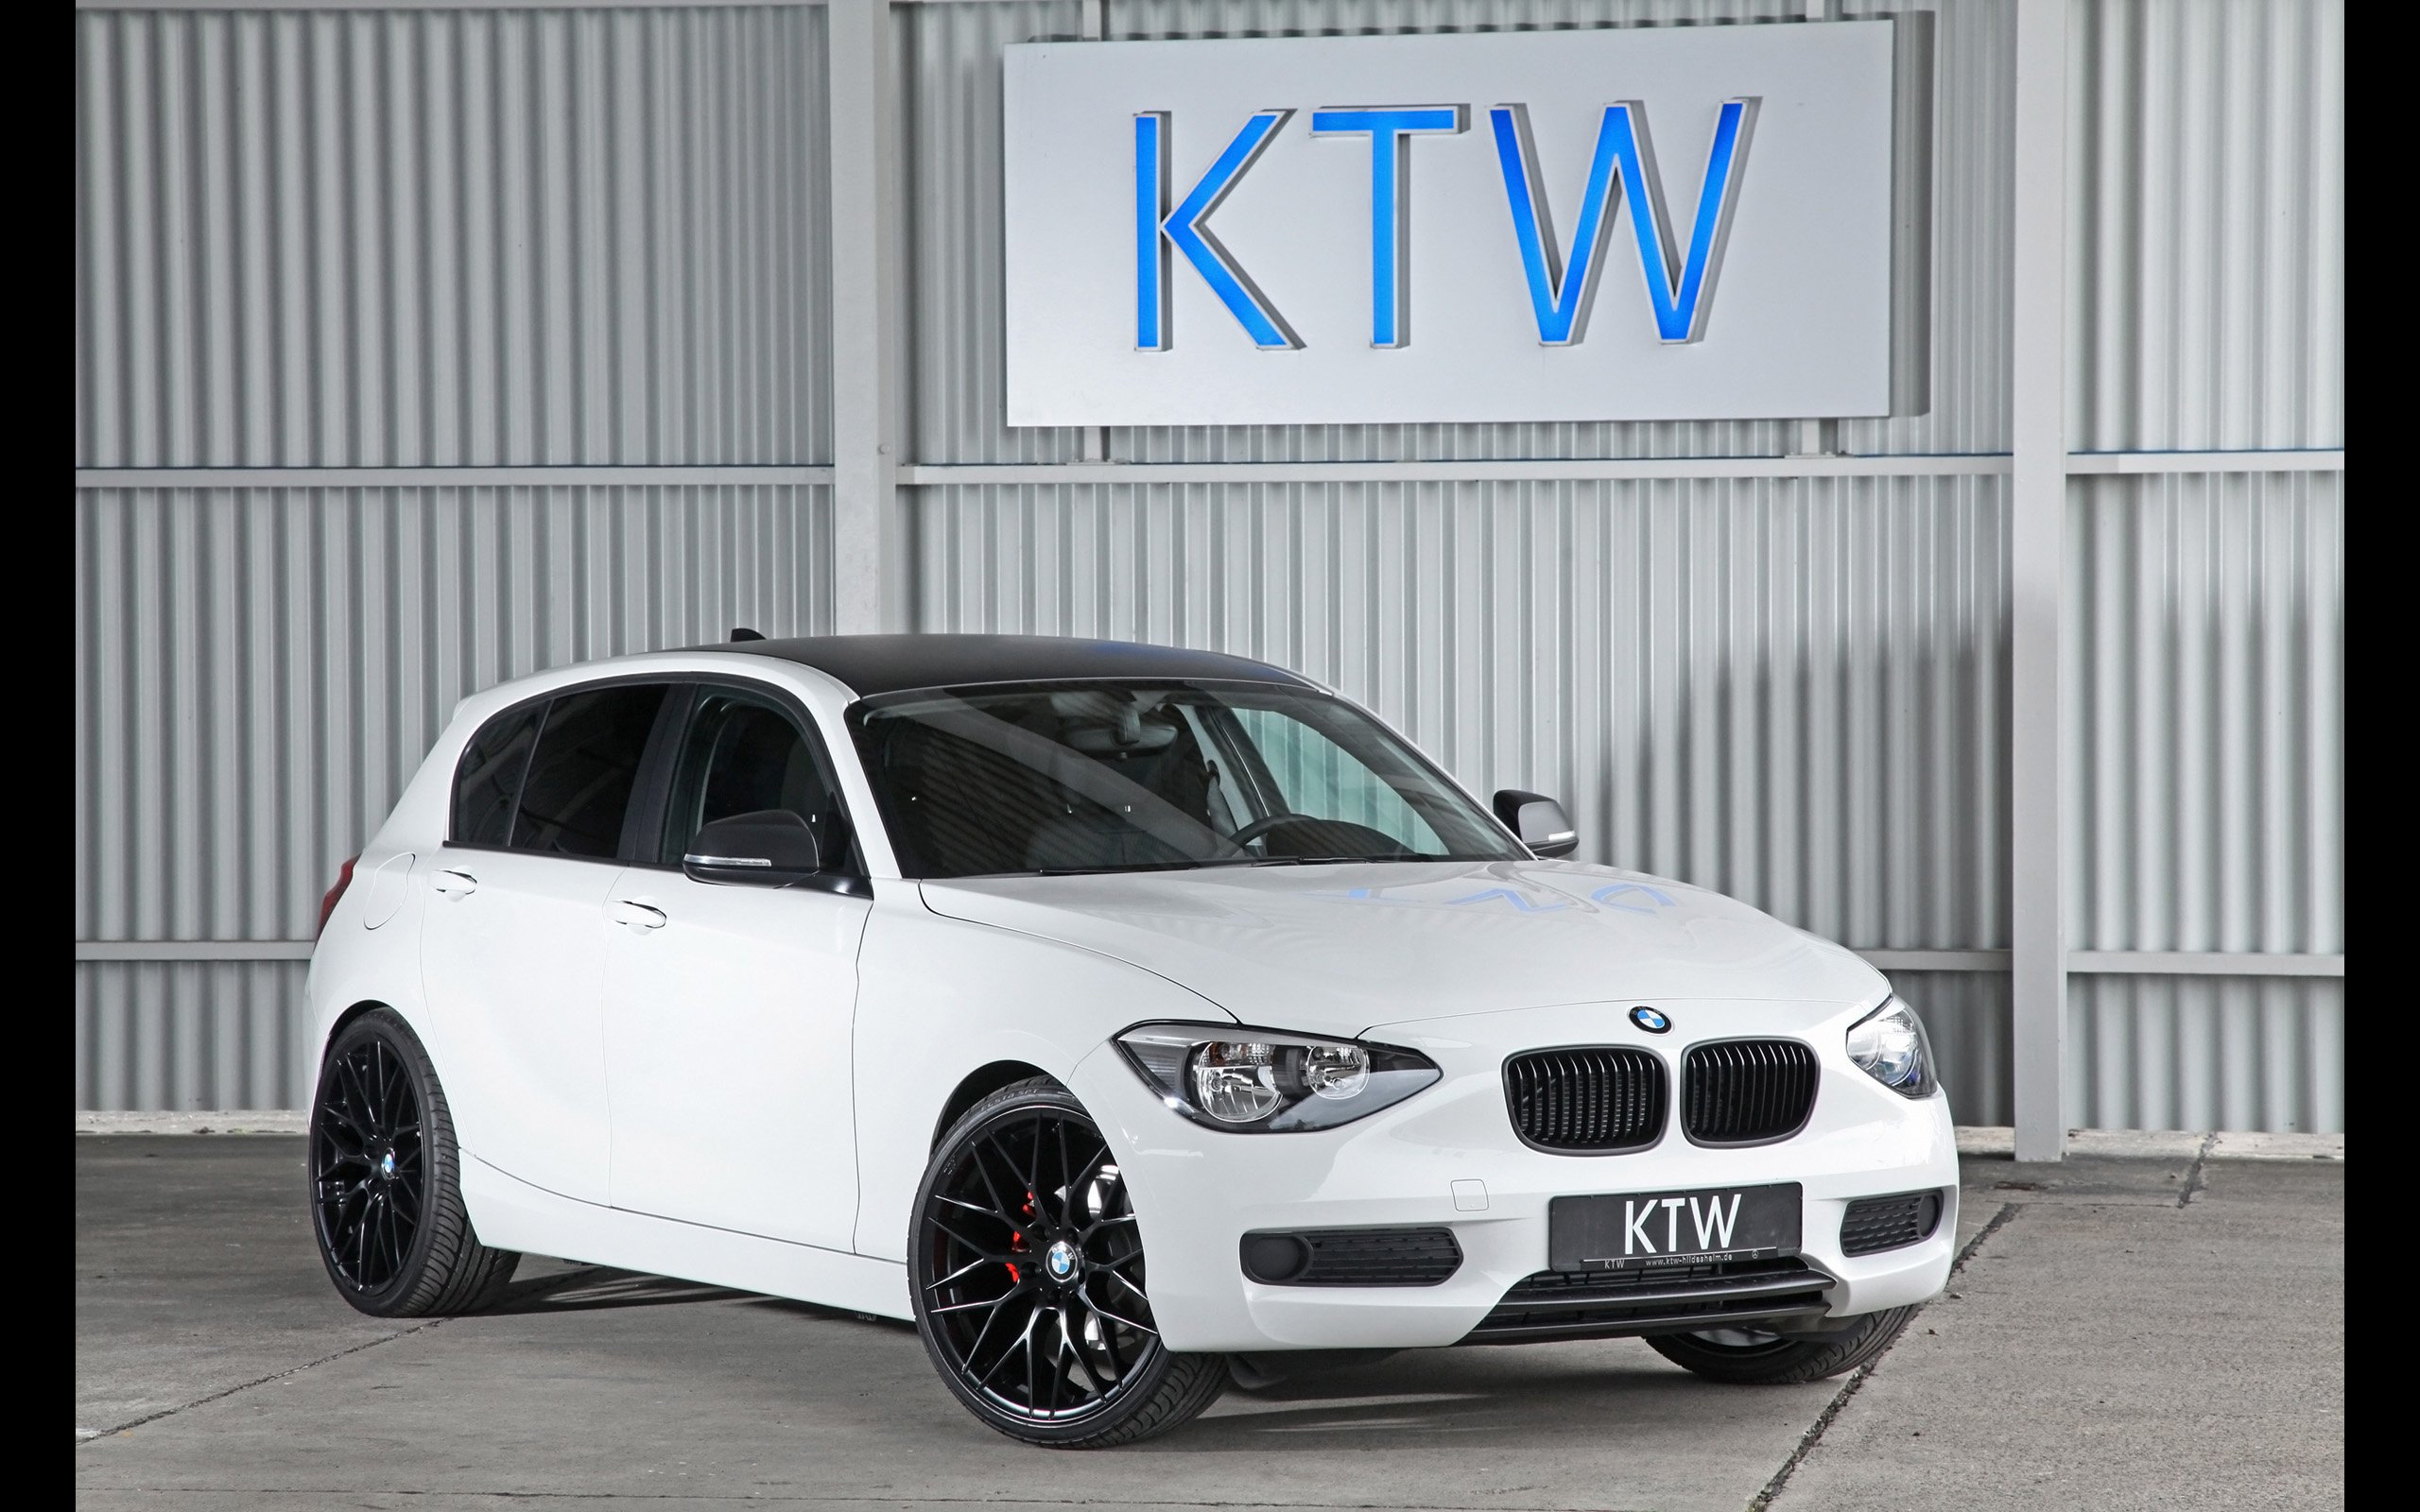 2014 ktw tuning bmw 1 series tuning gd wallpaper. Black Bedroom Furniture Sets. Home Design Ideas